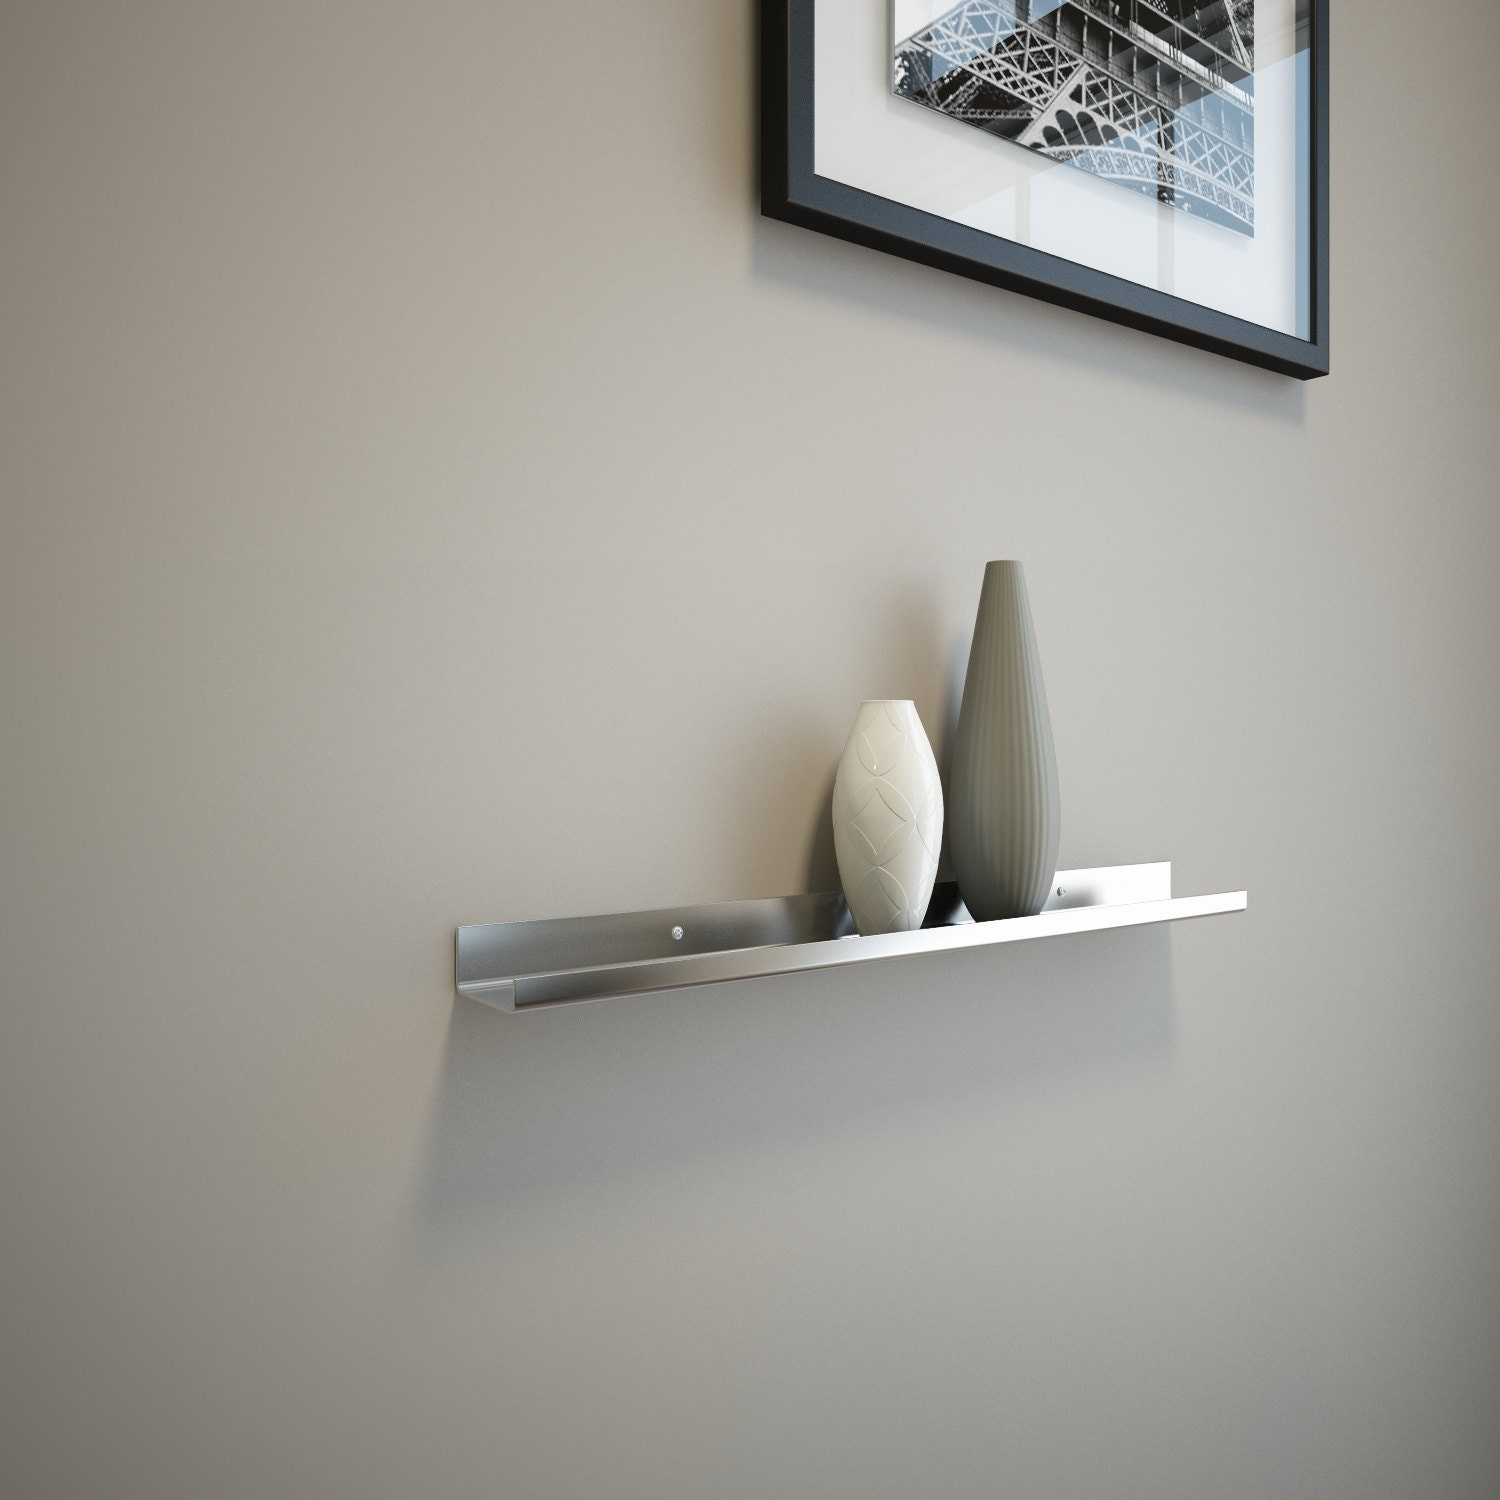 steel wall collections cksonline shelving shelf p com au stainless